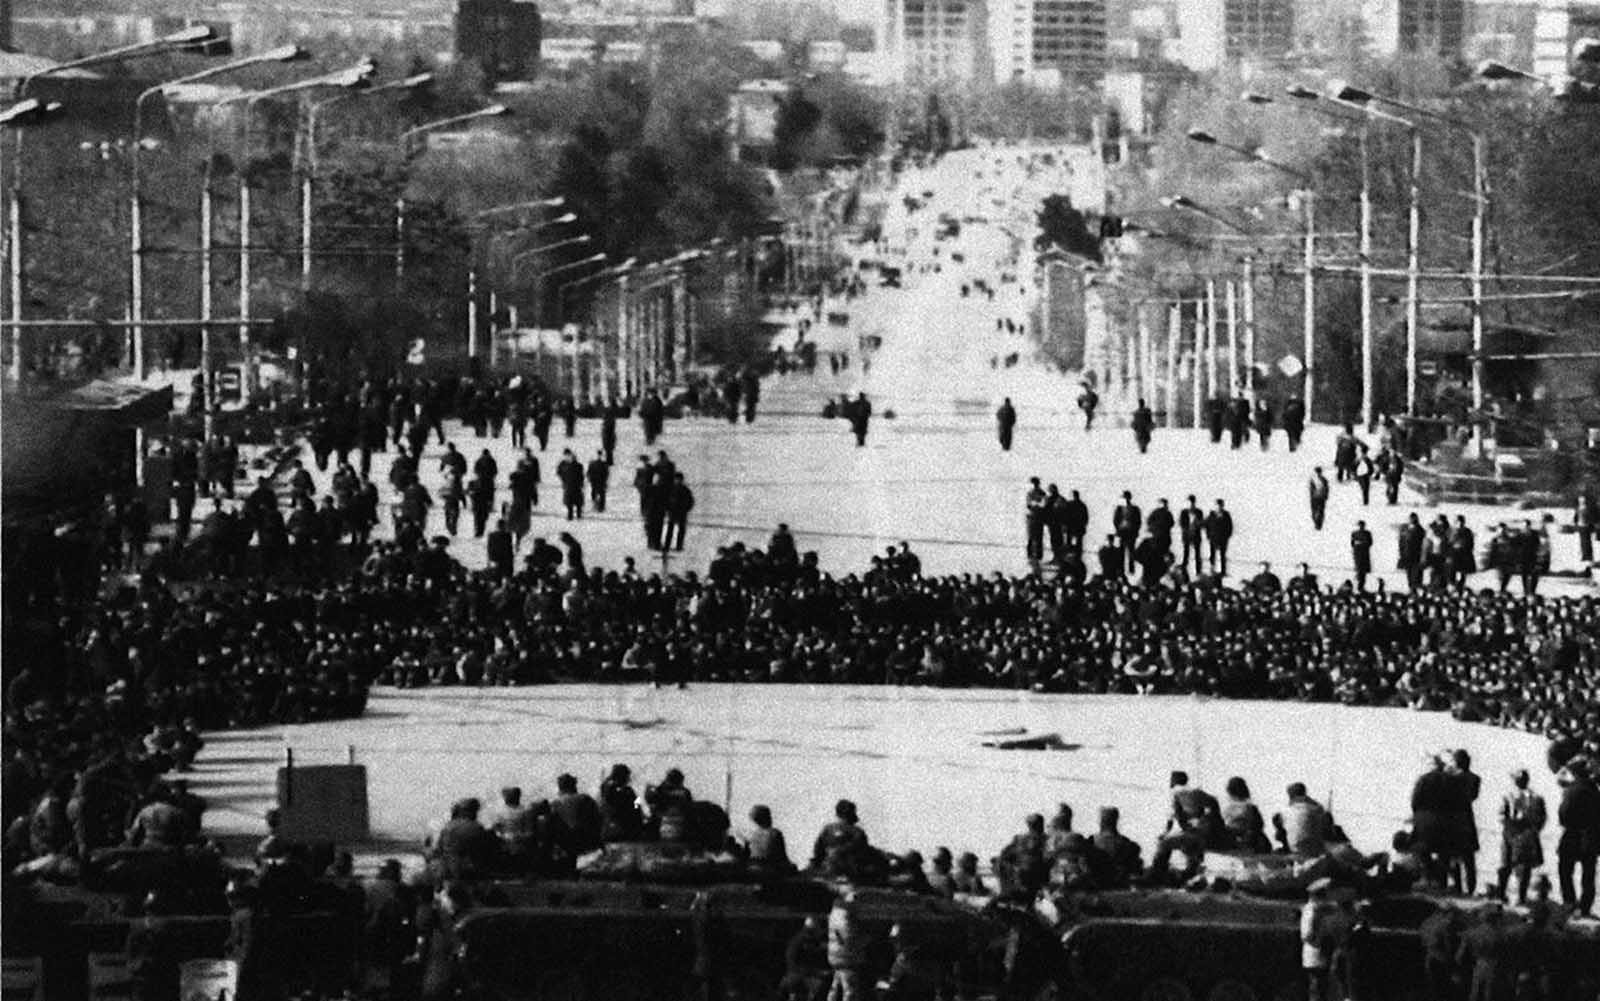 Residents face a cordon of Soviet Interior Ministry troops in front of the local Communist Party Headquarters in the Tajikistan capital of Dushanbe, on February 15, 1990. Soviet authorities declared a state of emergency in the city, following ethnic rioting.